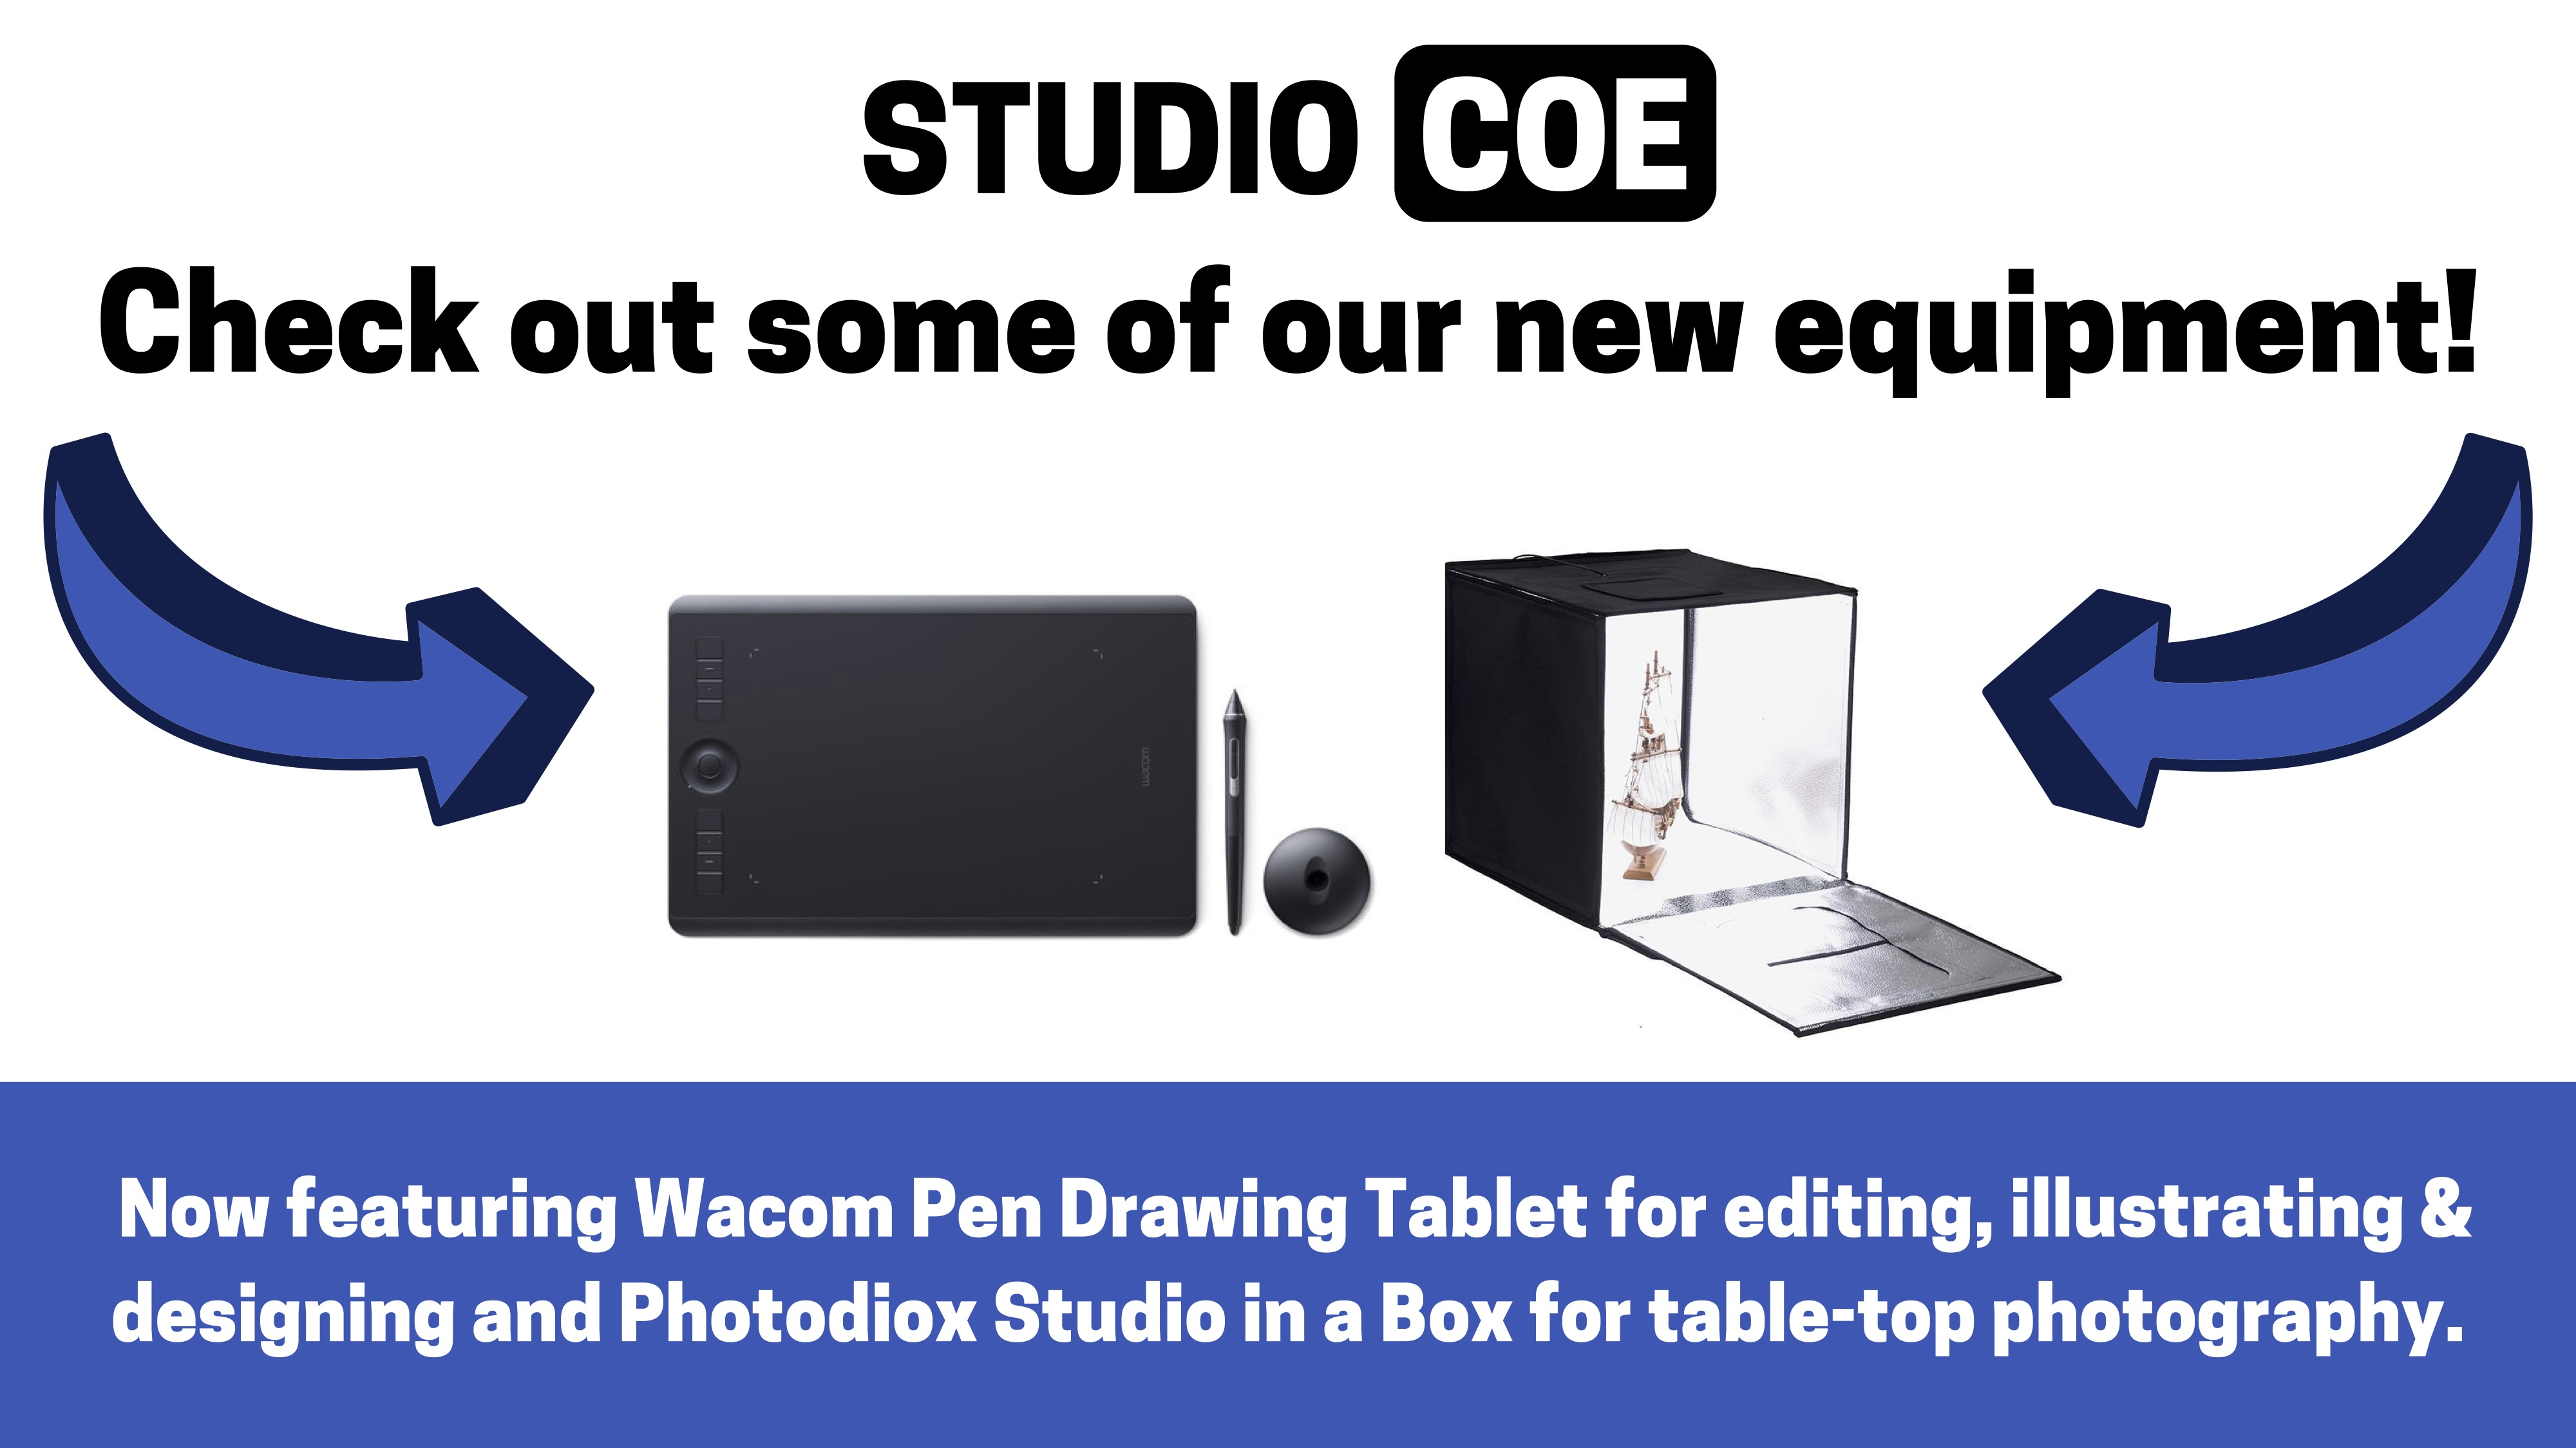 Studio Coe. Check out some of our new equipment. Now featuring Wacom Pen Drawing Tablet for editing, illustrating & designing and Photodiox Studio in a Box for table-top photography.